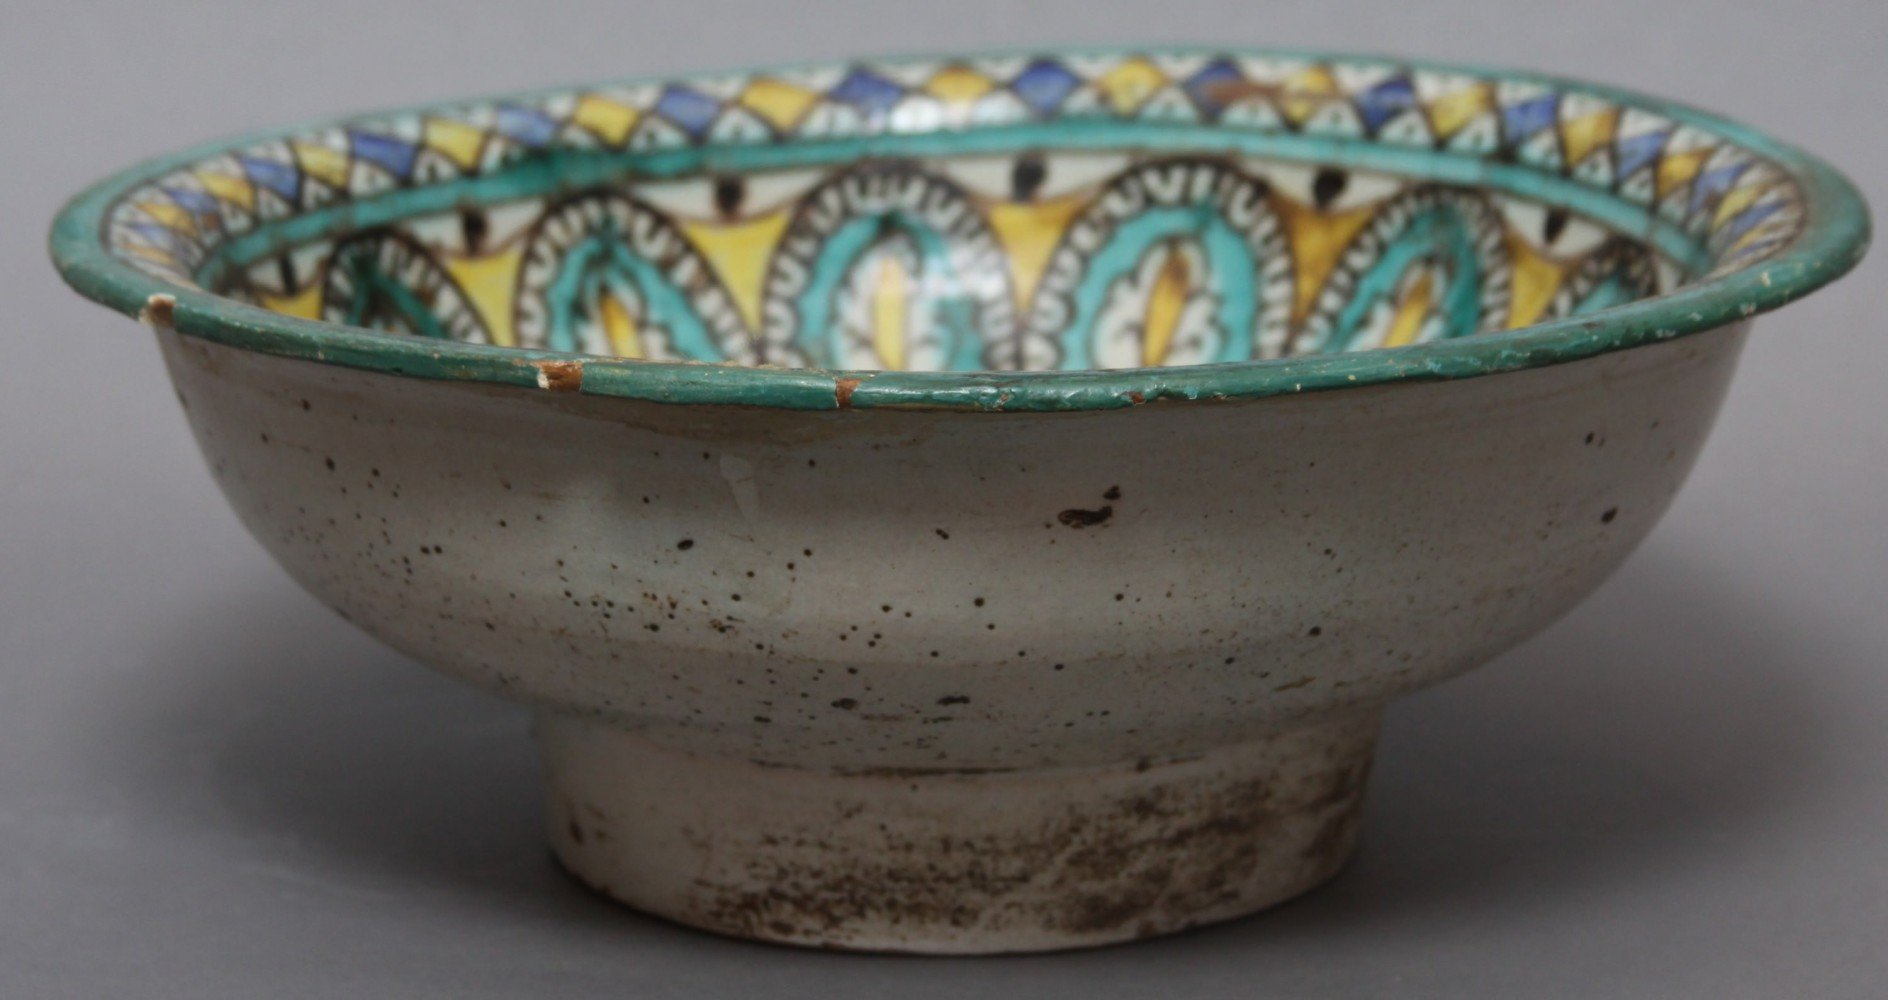 A Moroccan Tin Glazed Earthenware Bowl